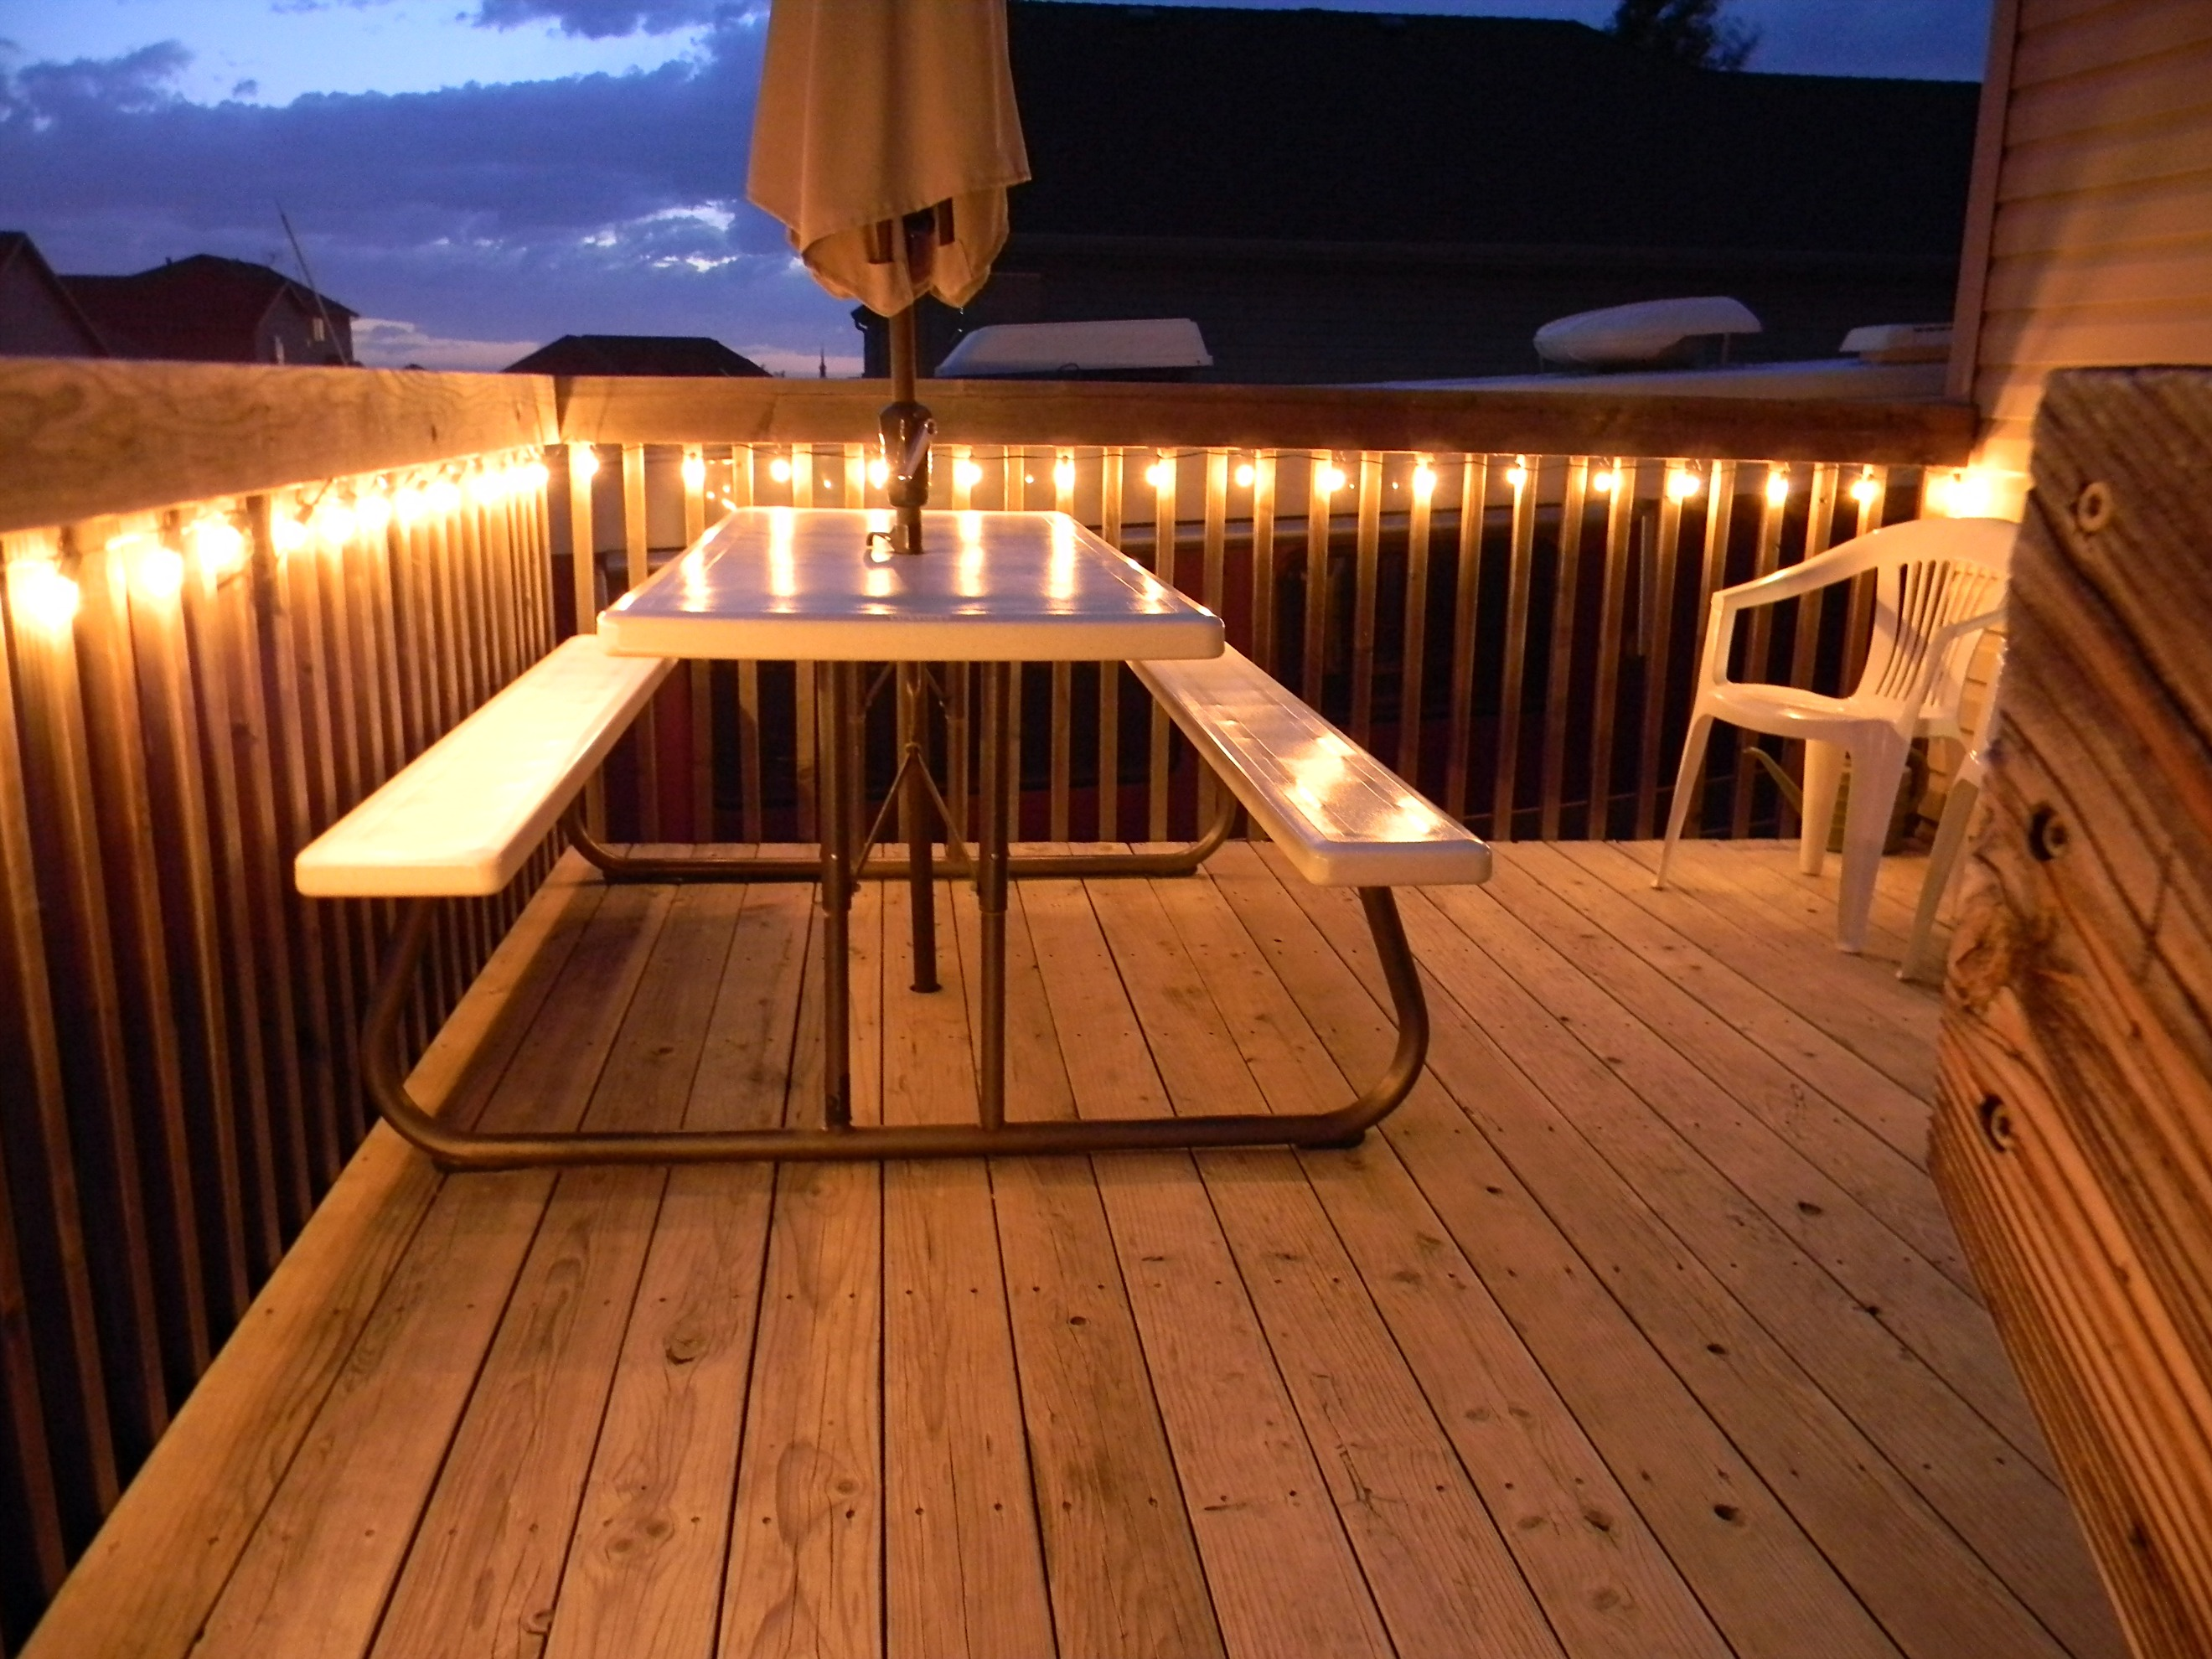 Deck lighting you can look decorative lights you can look commercial outdoor lighting you can look led garden lights